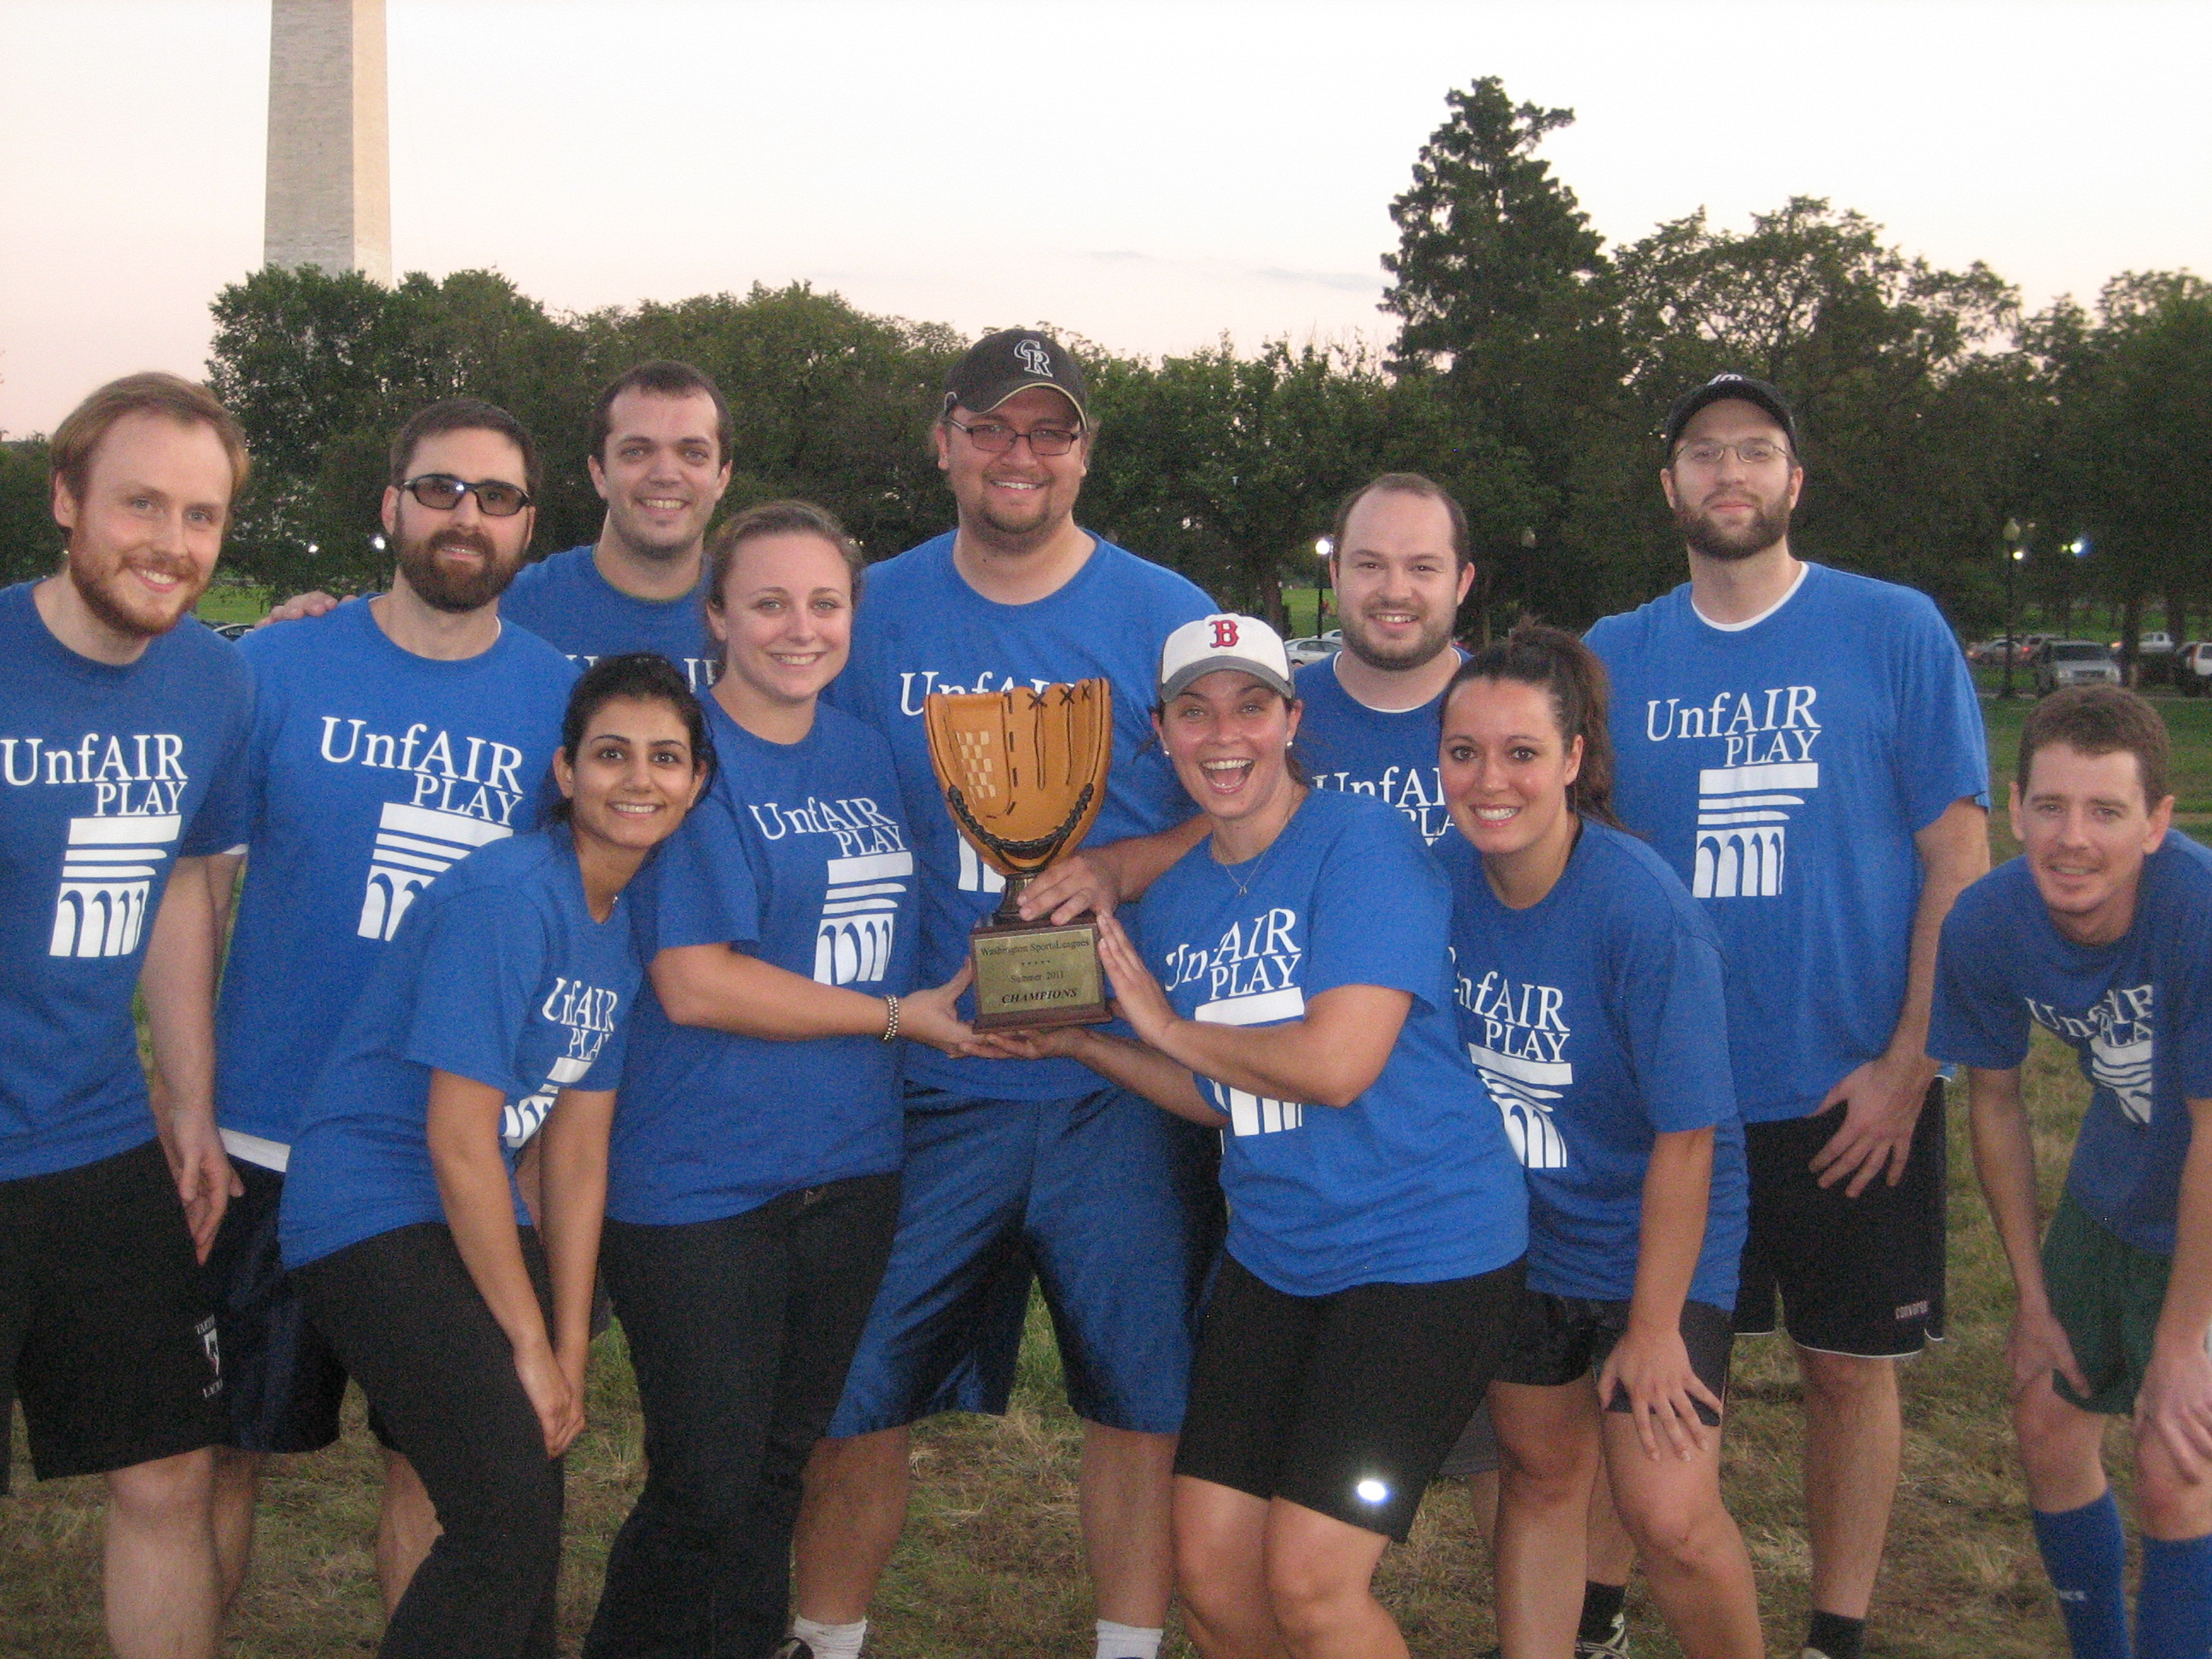 Unfair Play Summer 2011 Rec Champions